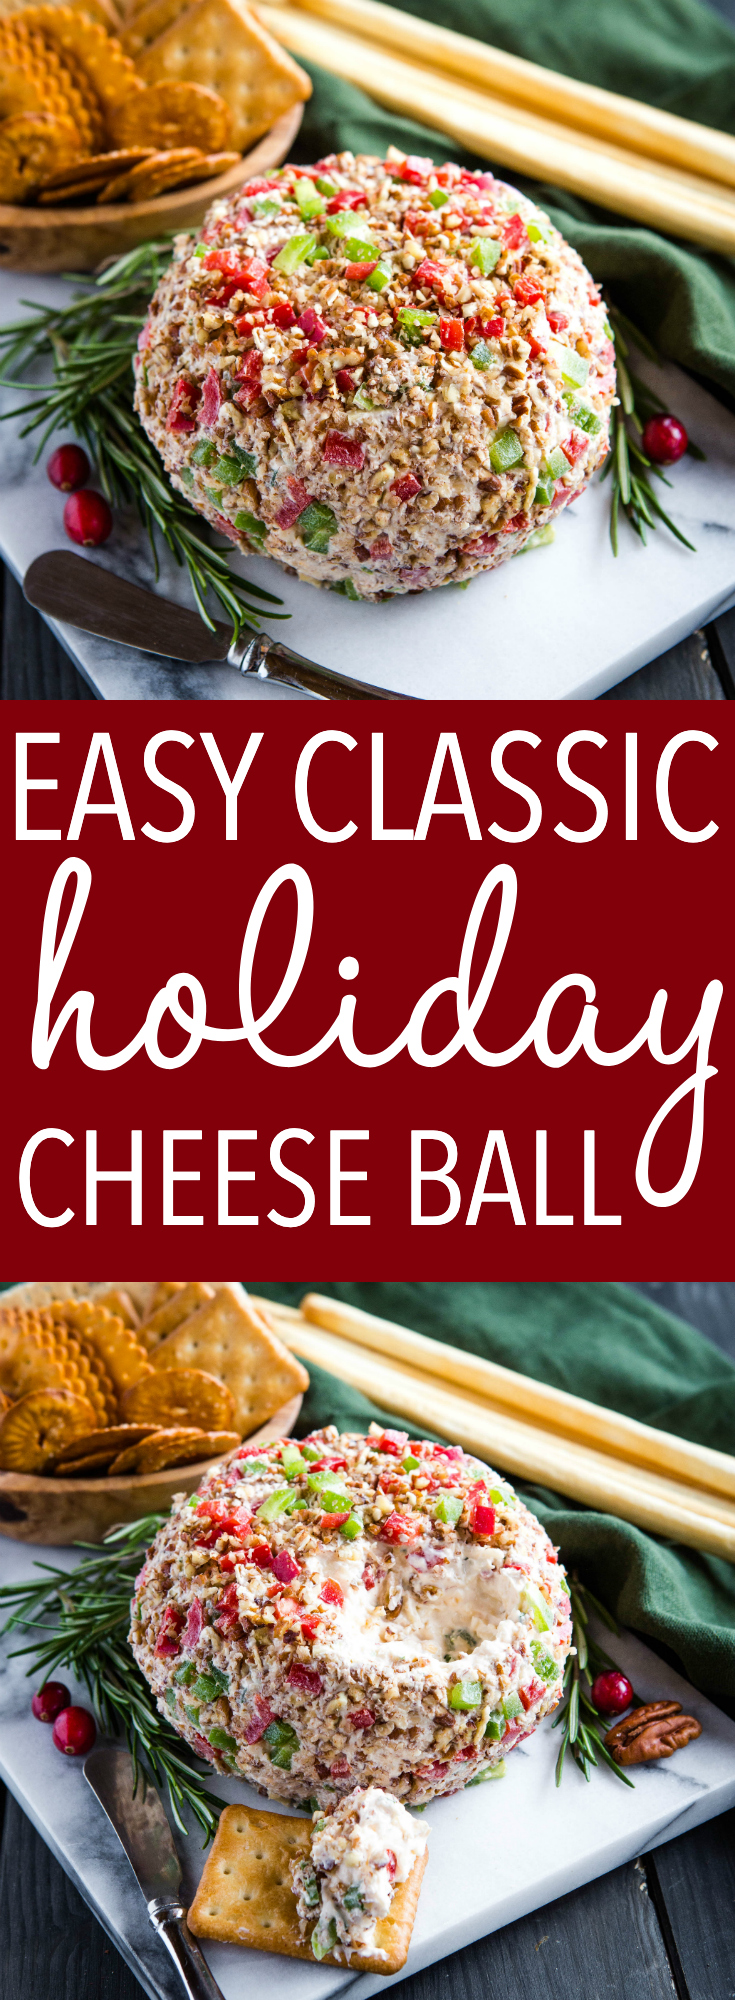 This cheddar cheese ball recipe makes a delicious appetizer for holiday entertaining.  It's easy to make with simple ingredients and the festive green and red colour means it's pretty as well! Recipe from thebusybaker.ca! #cheeseball #cheese #appetizer #christmas #festive #holiday #holidayentertaining #entertaining #guests #christmasdinner #makeahead via @busybakerblog